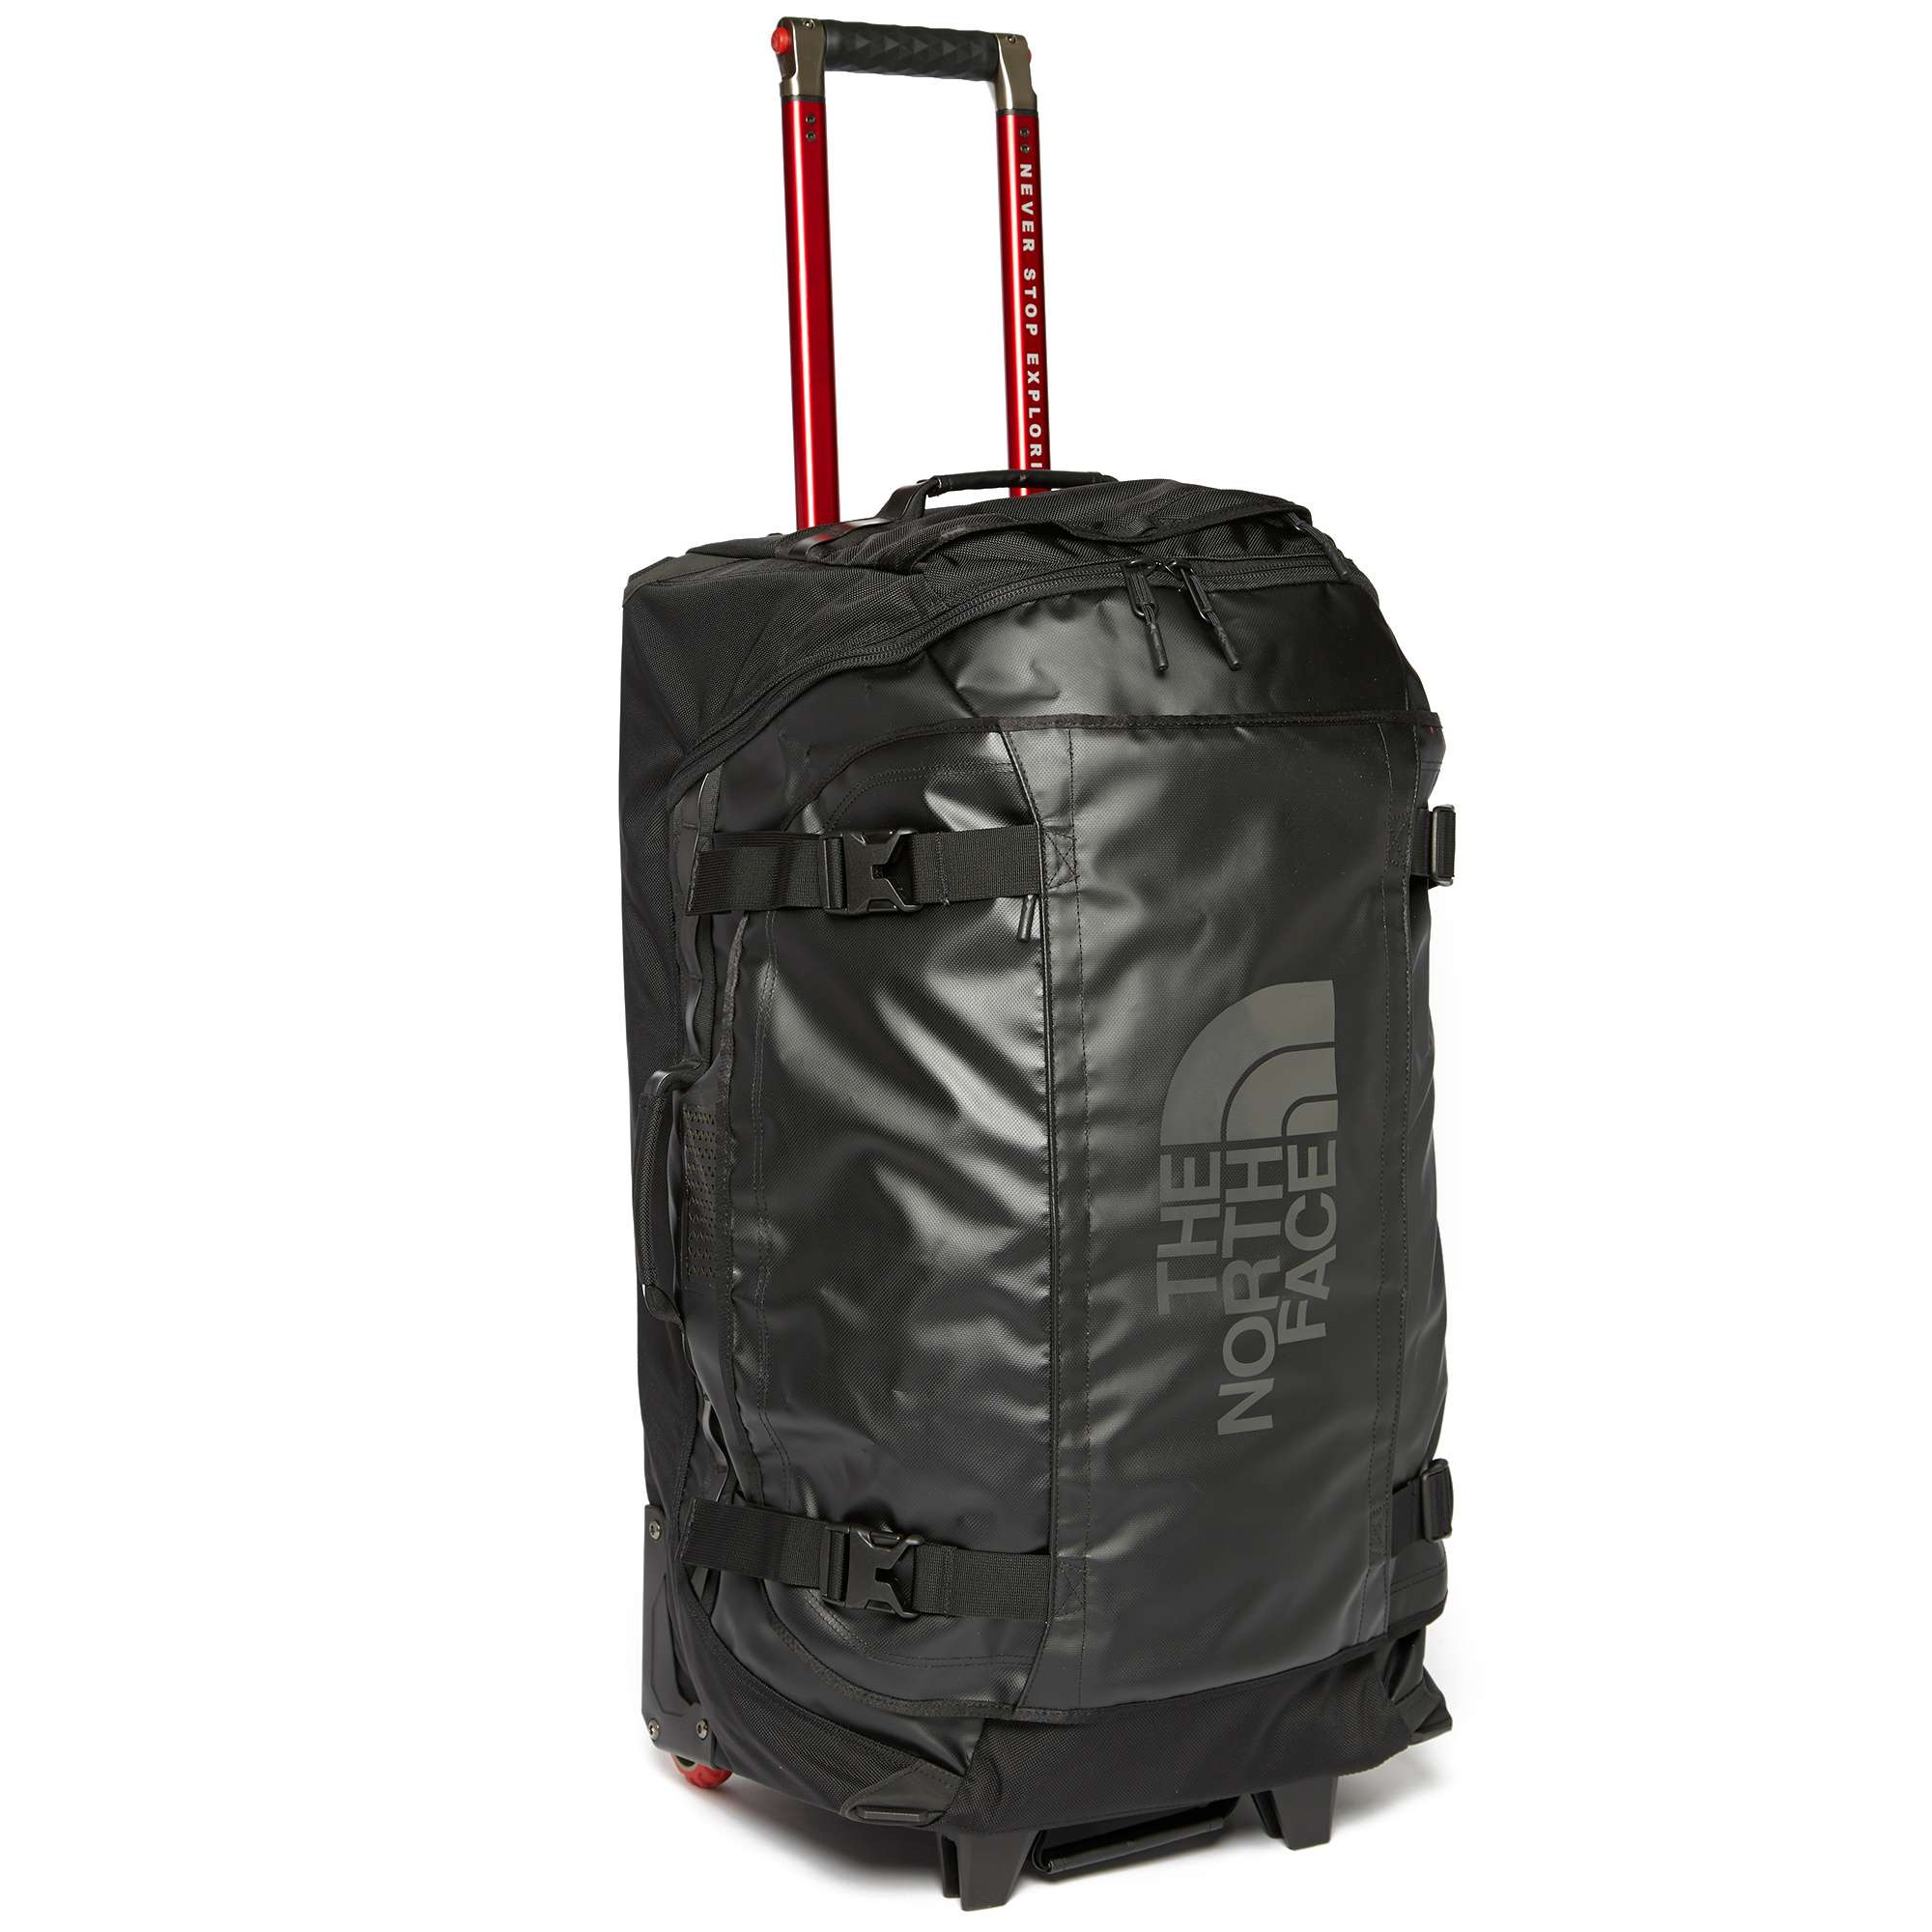 THE NORTH FACE Rolling Thunder 30ʺ Luggage